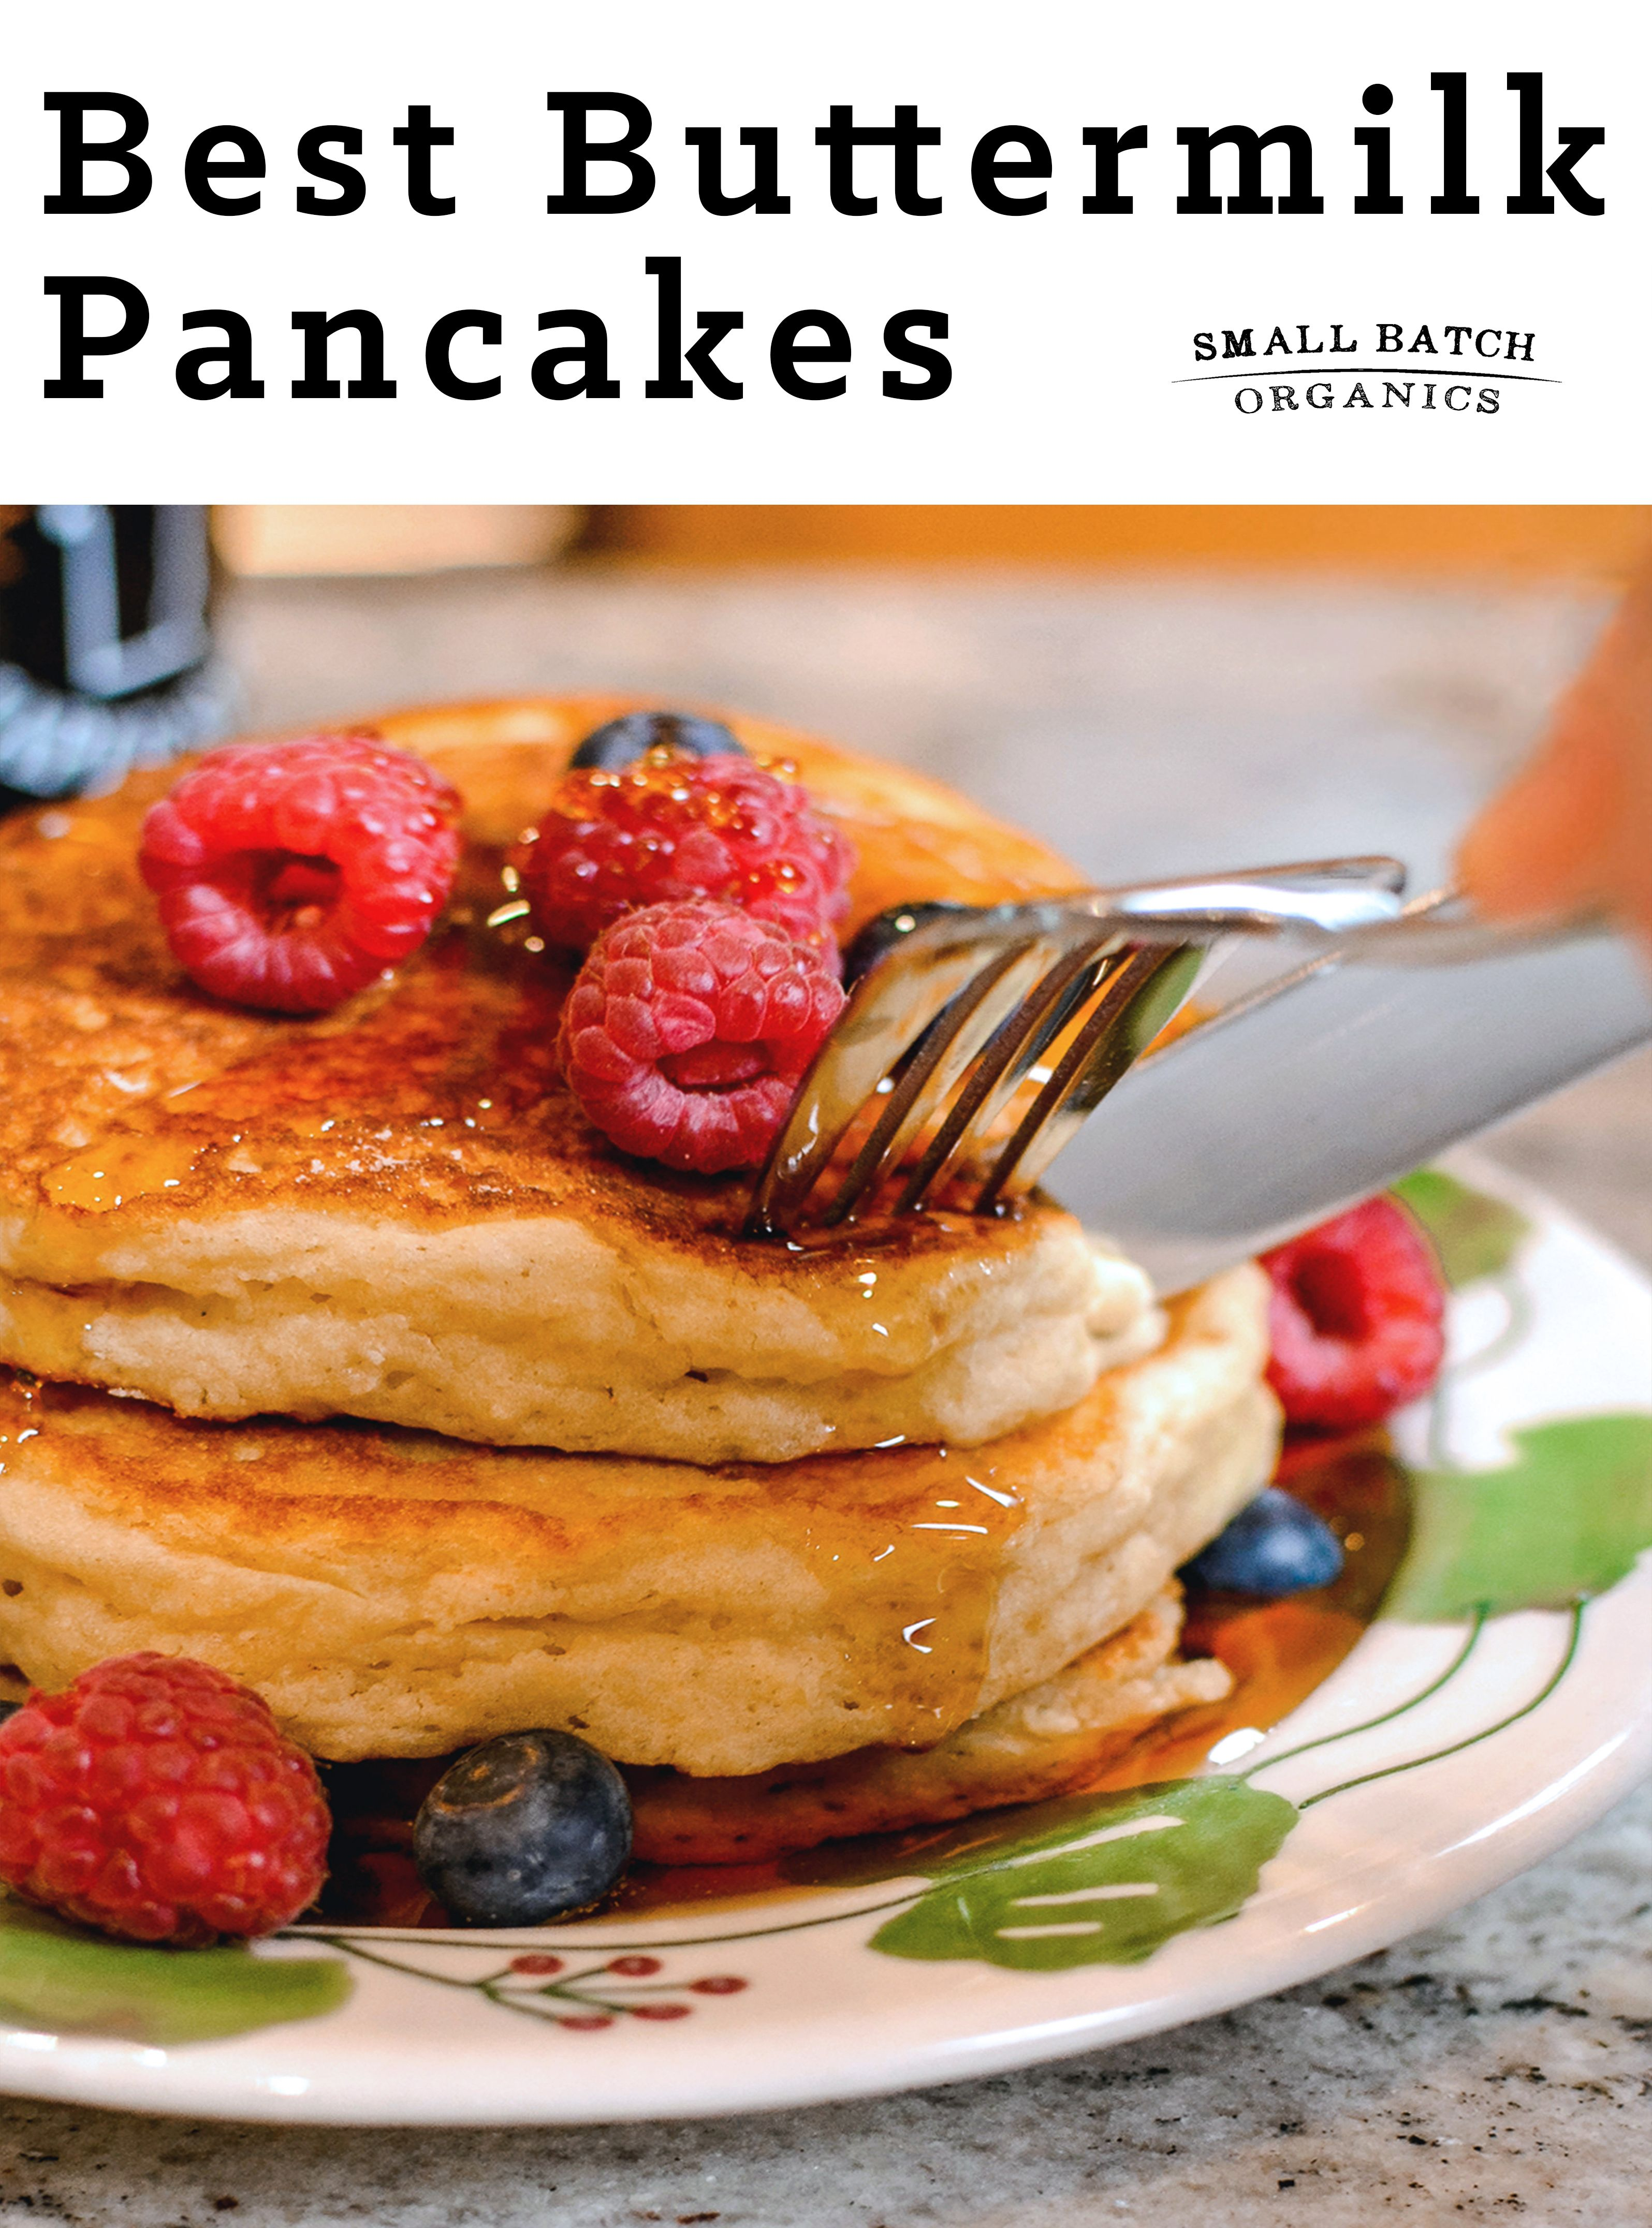 Buttermilk Pancakes Small Batch Recipe In 2020 Buttermilk Pancakes Yummy Breakfast Pancakes